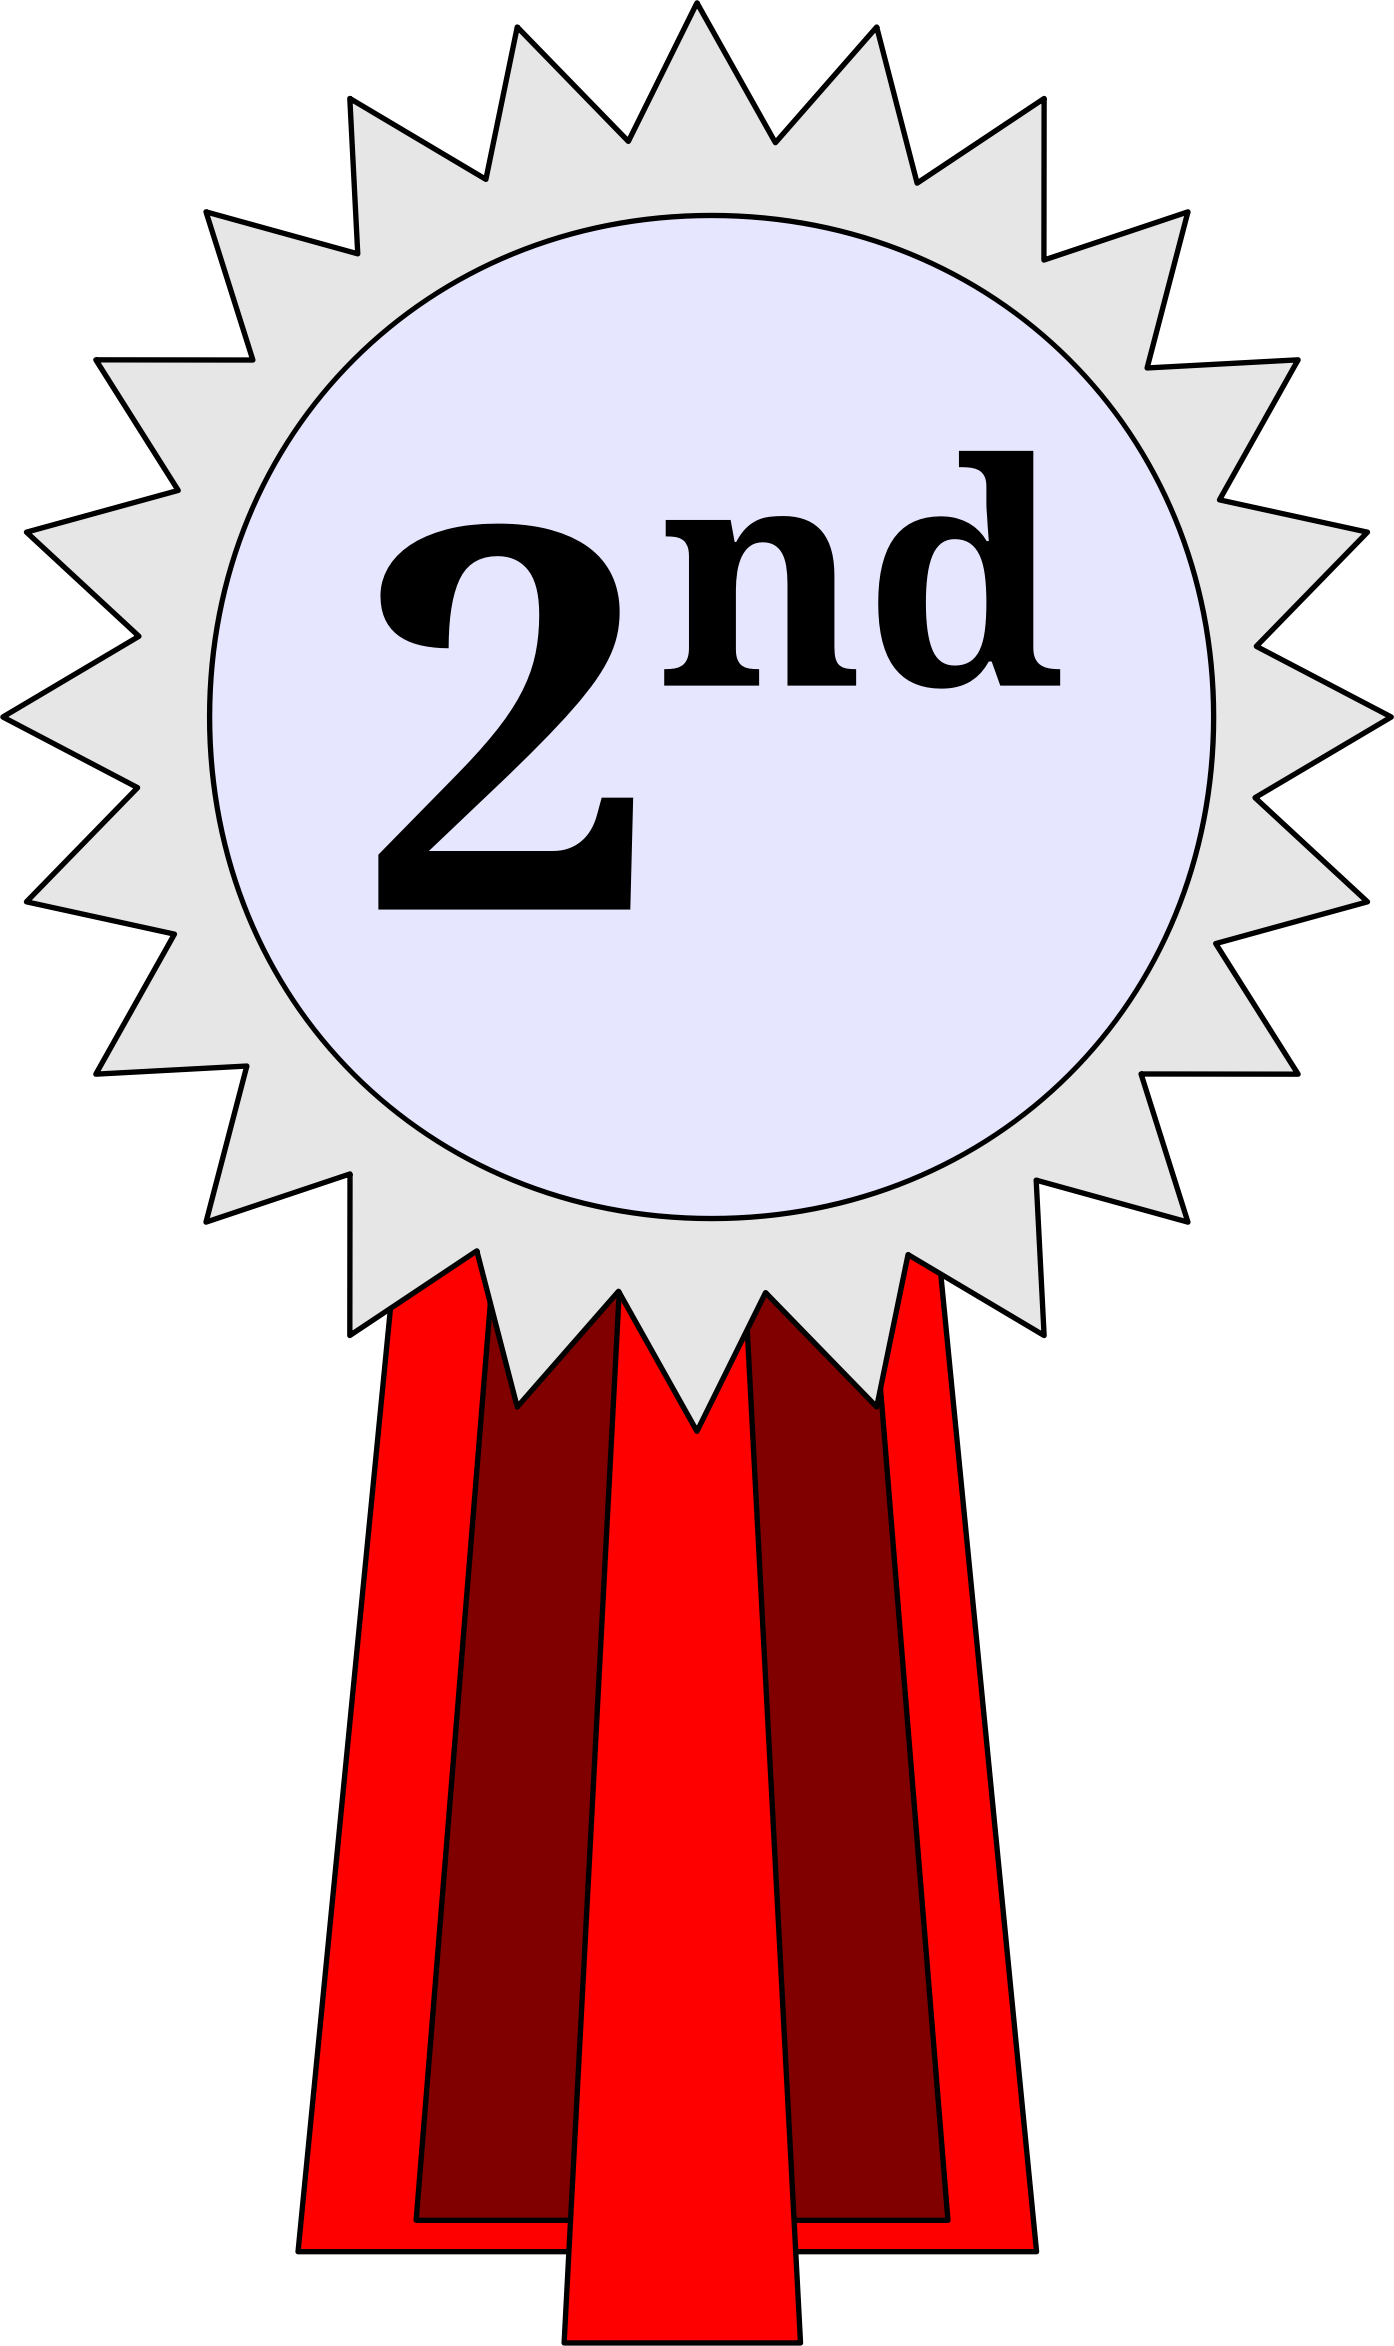 2nd place ribbon clipart banner free stock 1st 2nd 3rd Place Ribbon Clipart - Clipart Kid banner free stock